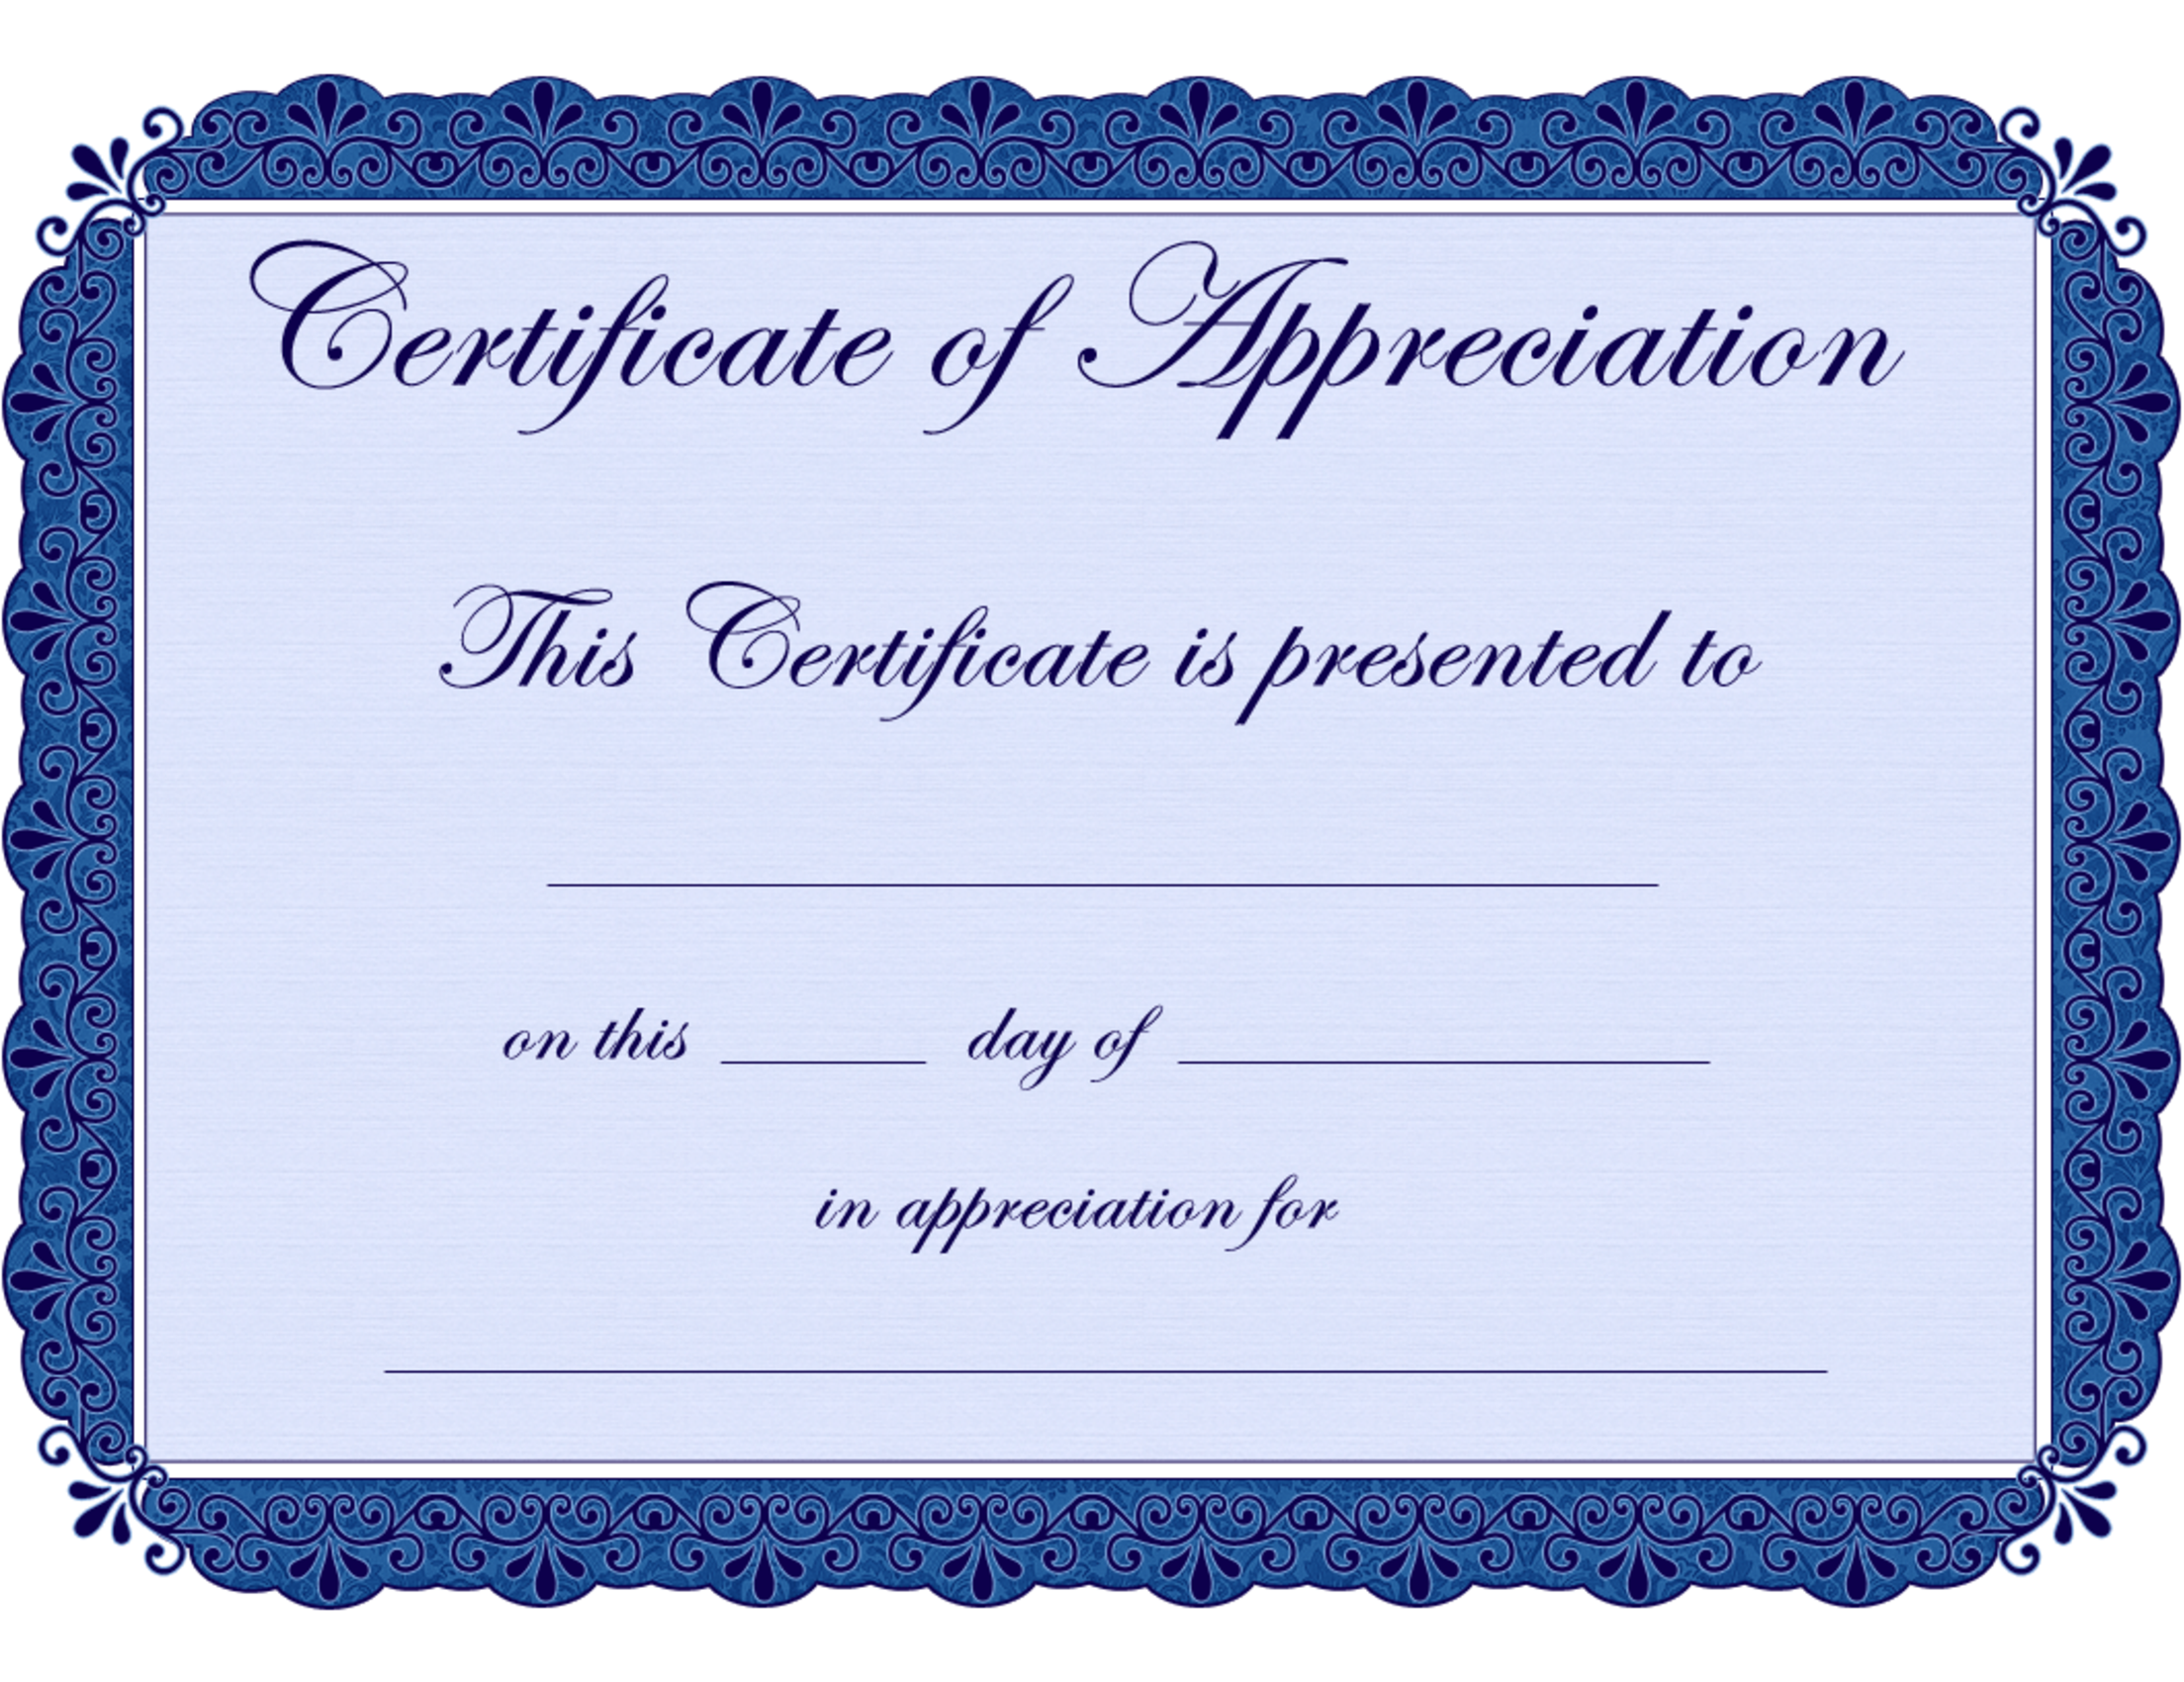 Free printable certificates certificate of appreciation free printable certificates certificate of appreciation certificate yadclub Image collections